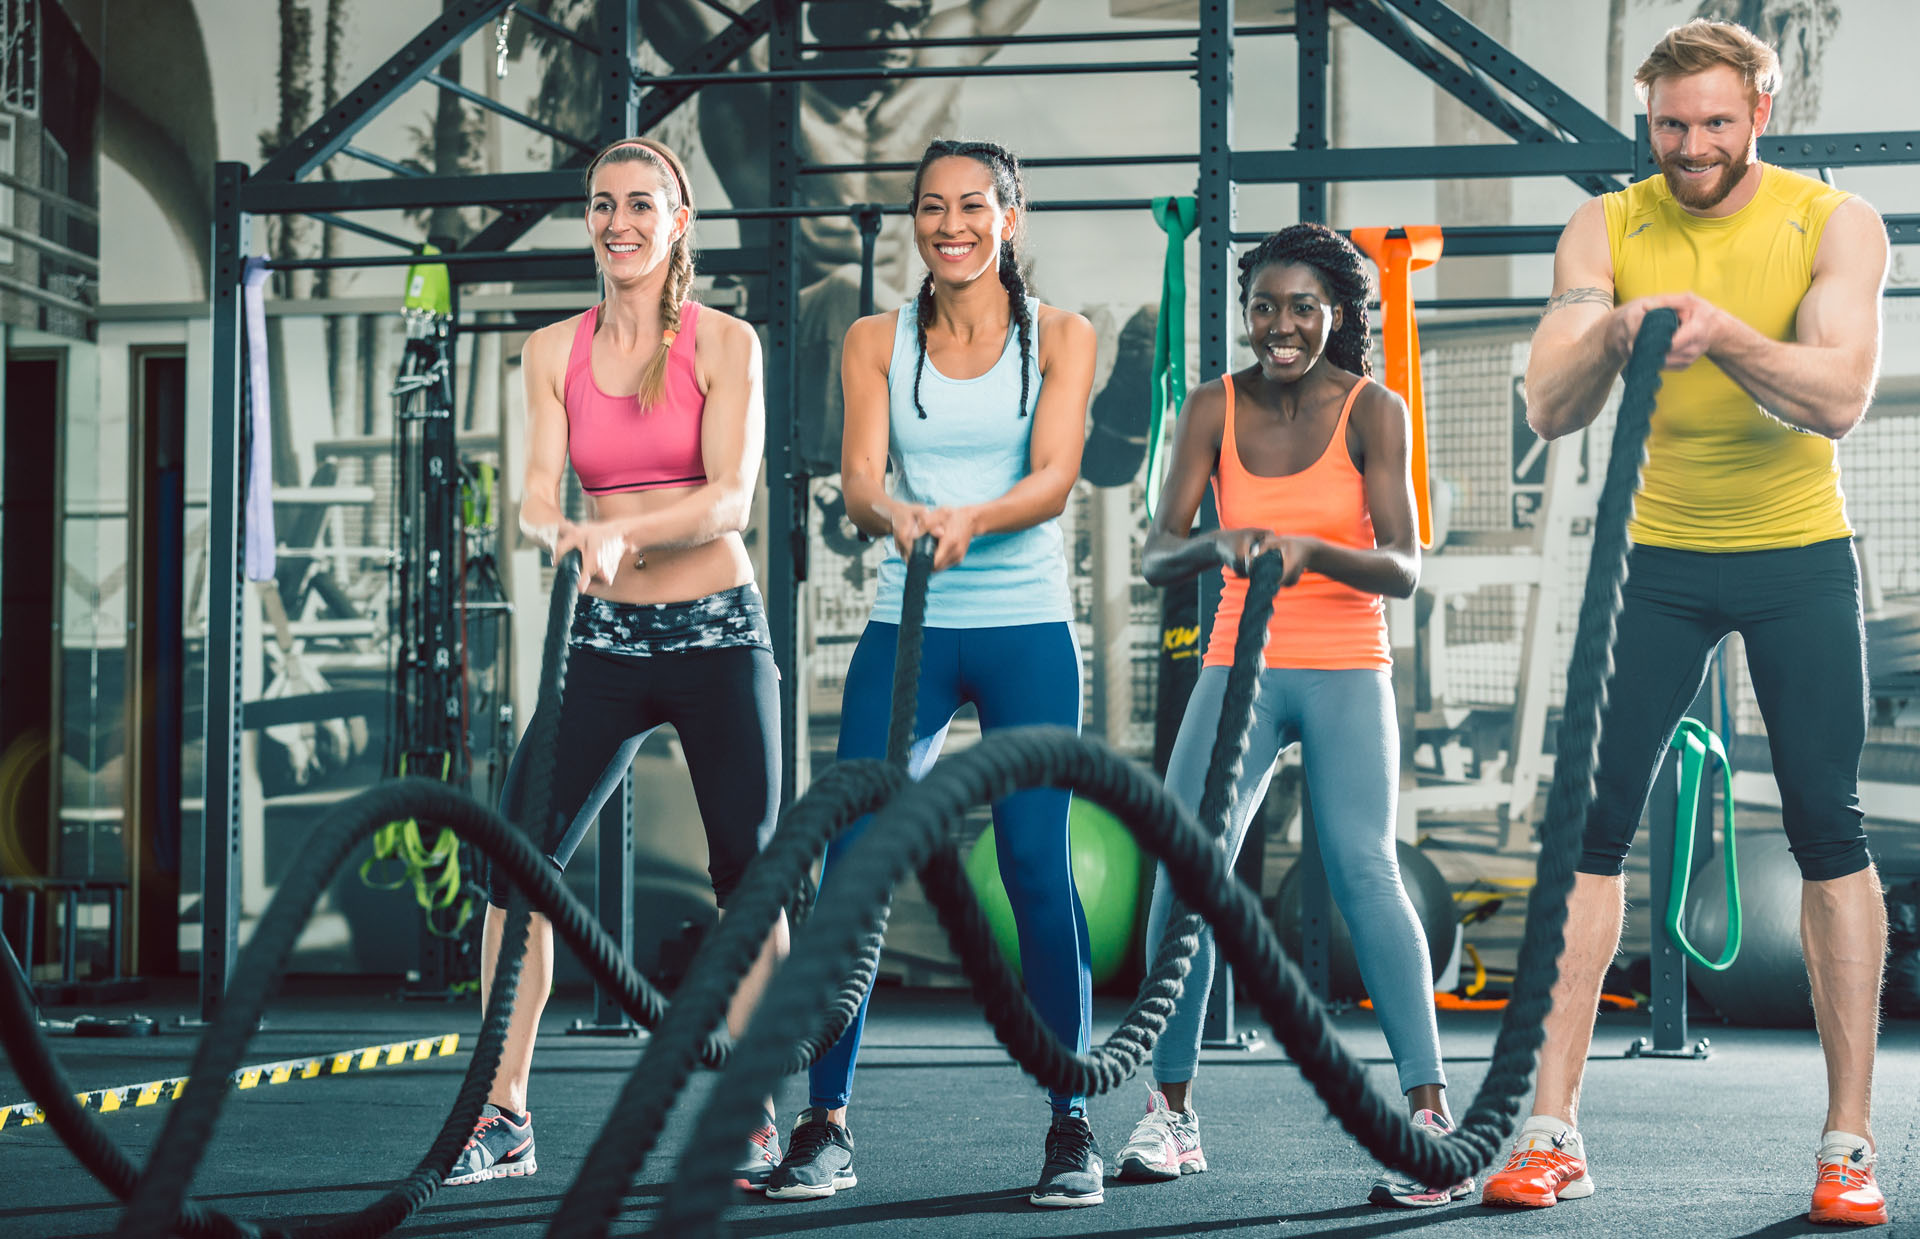 Determined and strong cheerful people exercising together with heavy battle ropes during intense functional training group class at a cool fitness club with modern equipment